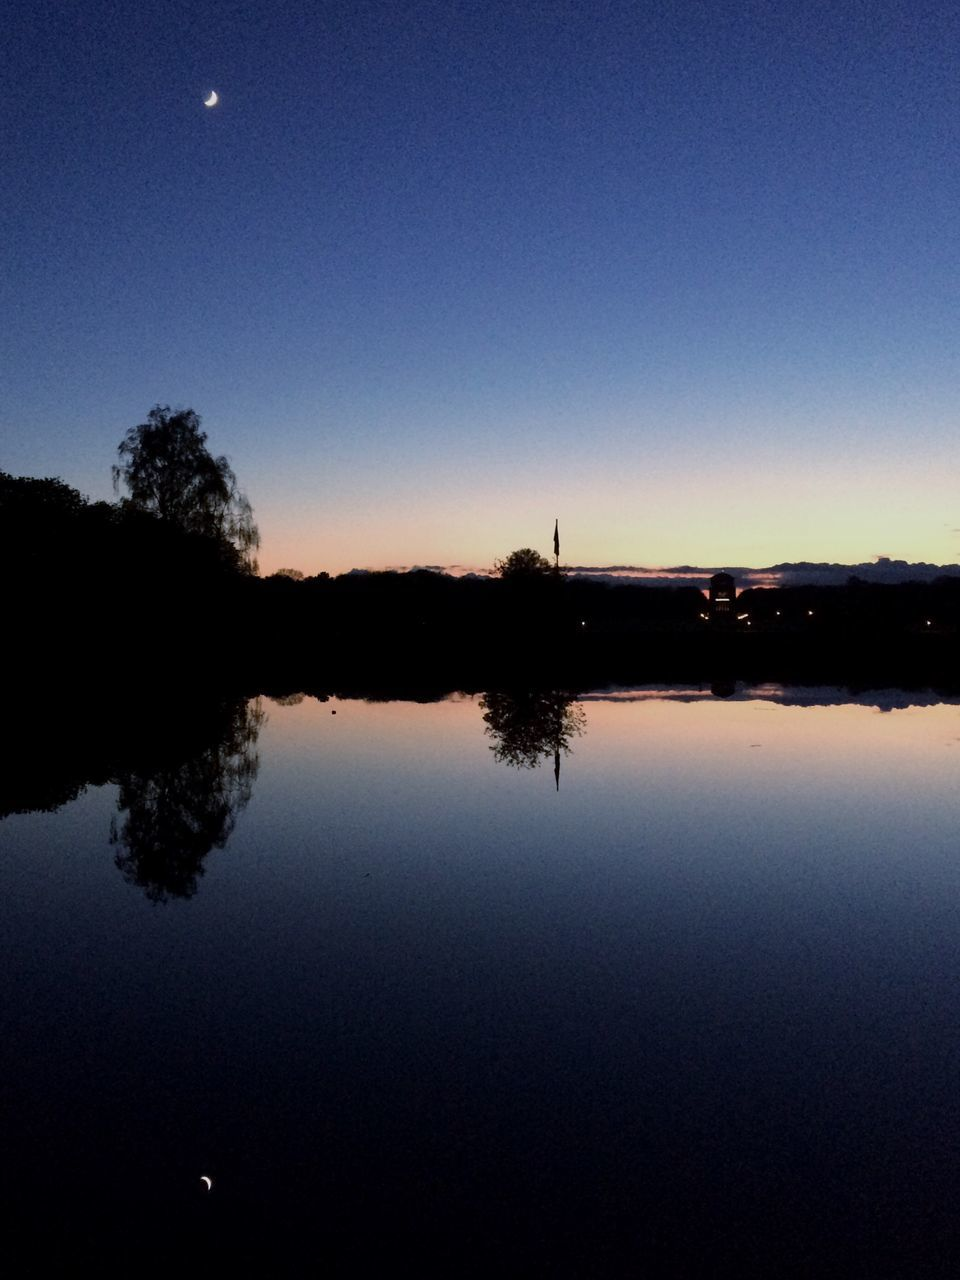 reflection, silhouette, water, tranquil scene, tranquility, nature, no people, lake, outdoors, scenics, sky, clear sky, beauty in nature, dusk, sunset, tree, blue, moon, day